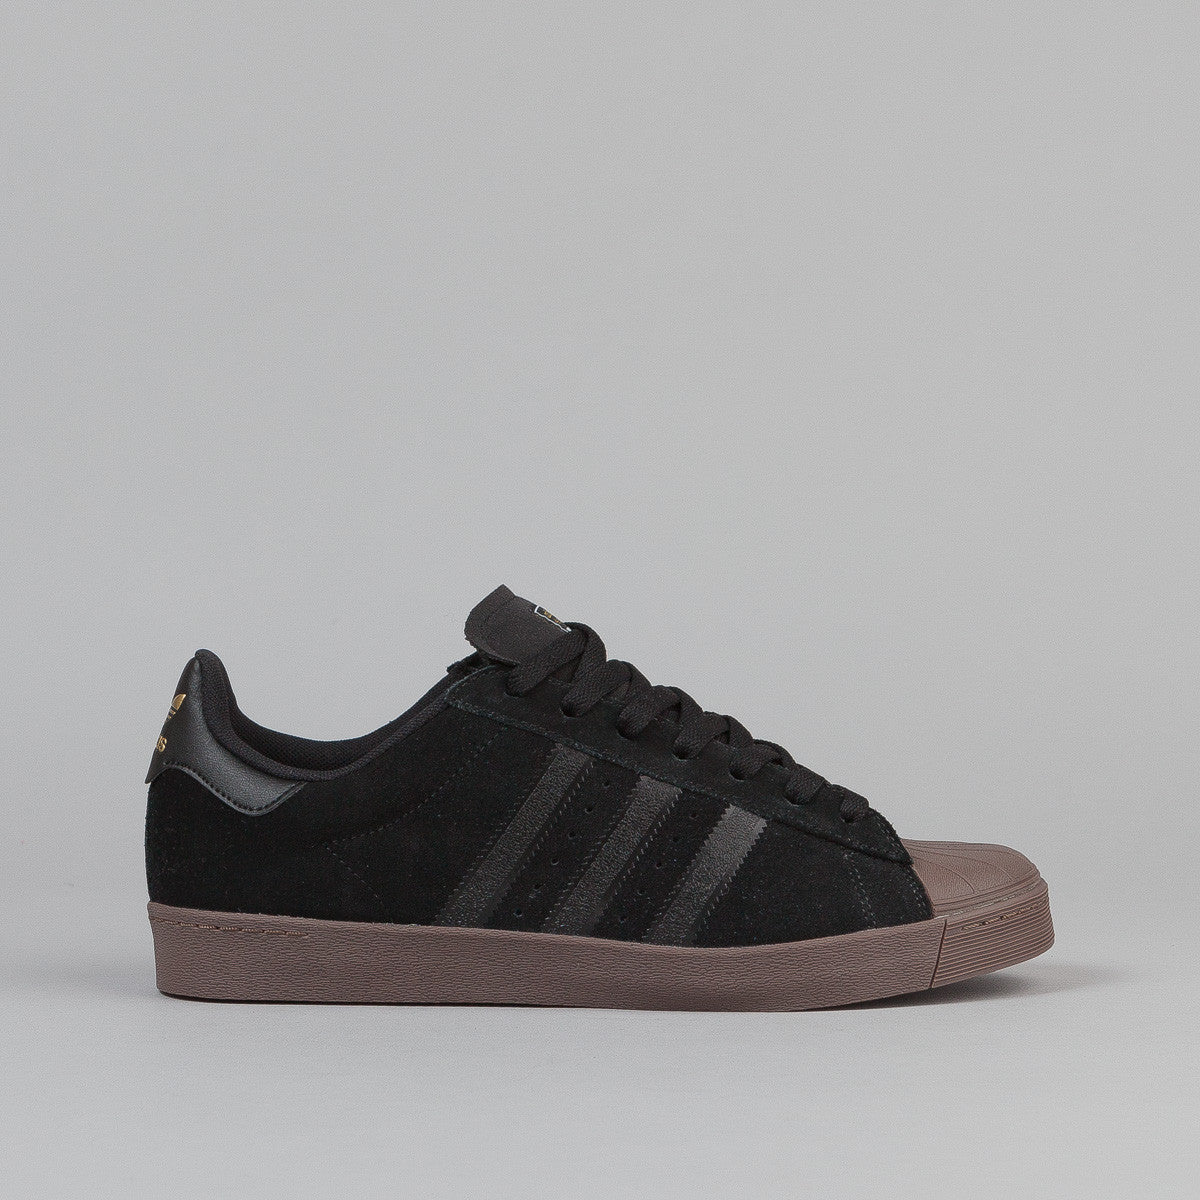 Adidas Superstar Vulc Adv Shoes